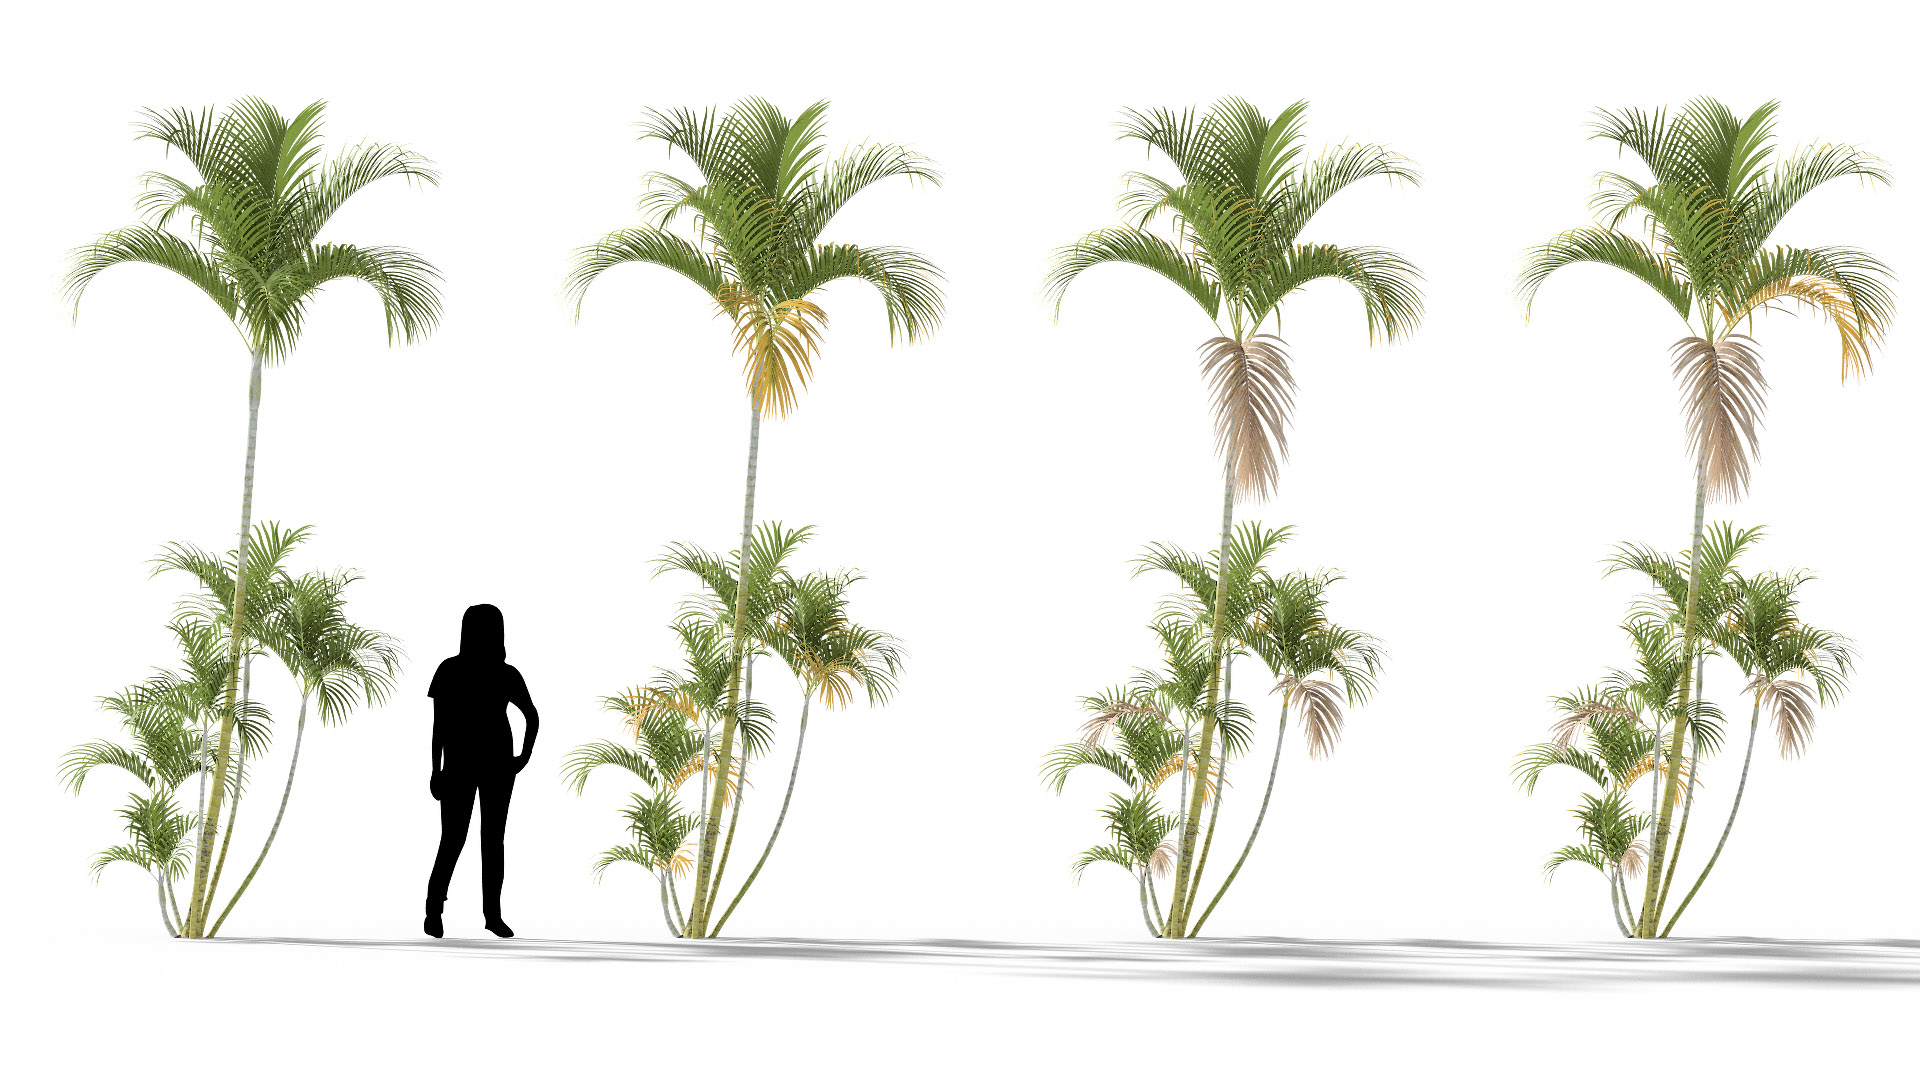 3D model of the Butterfly palm Dypsis lutescens health variations